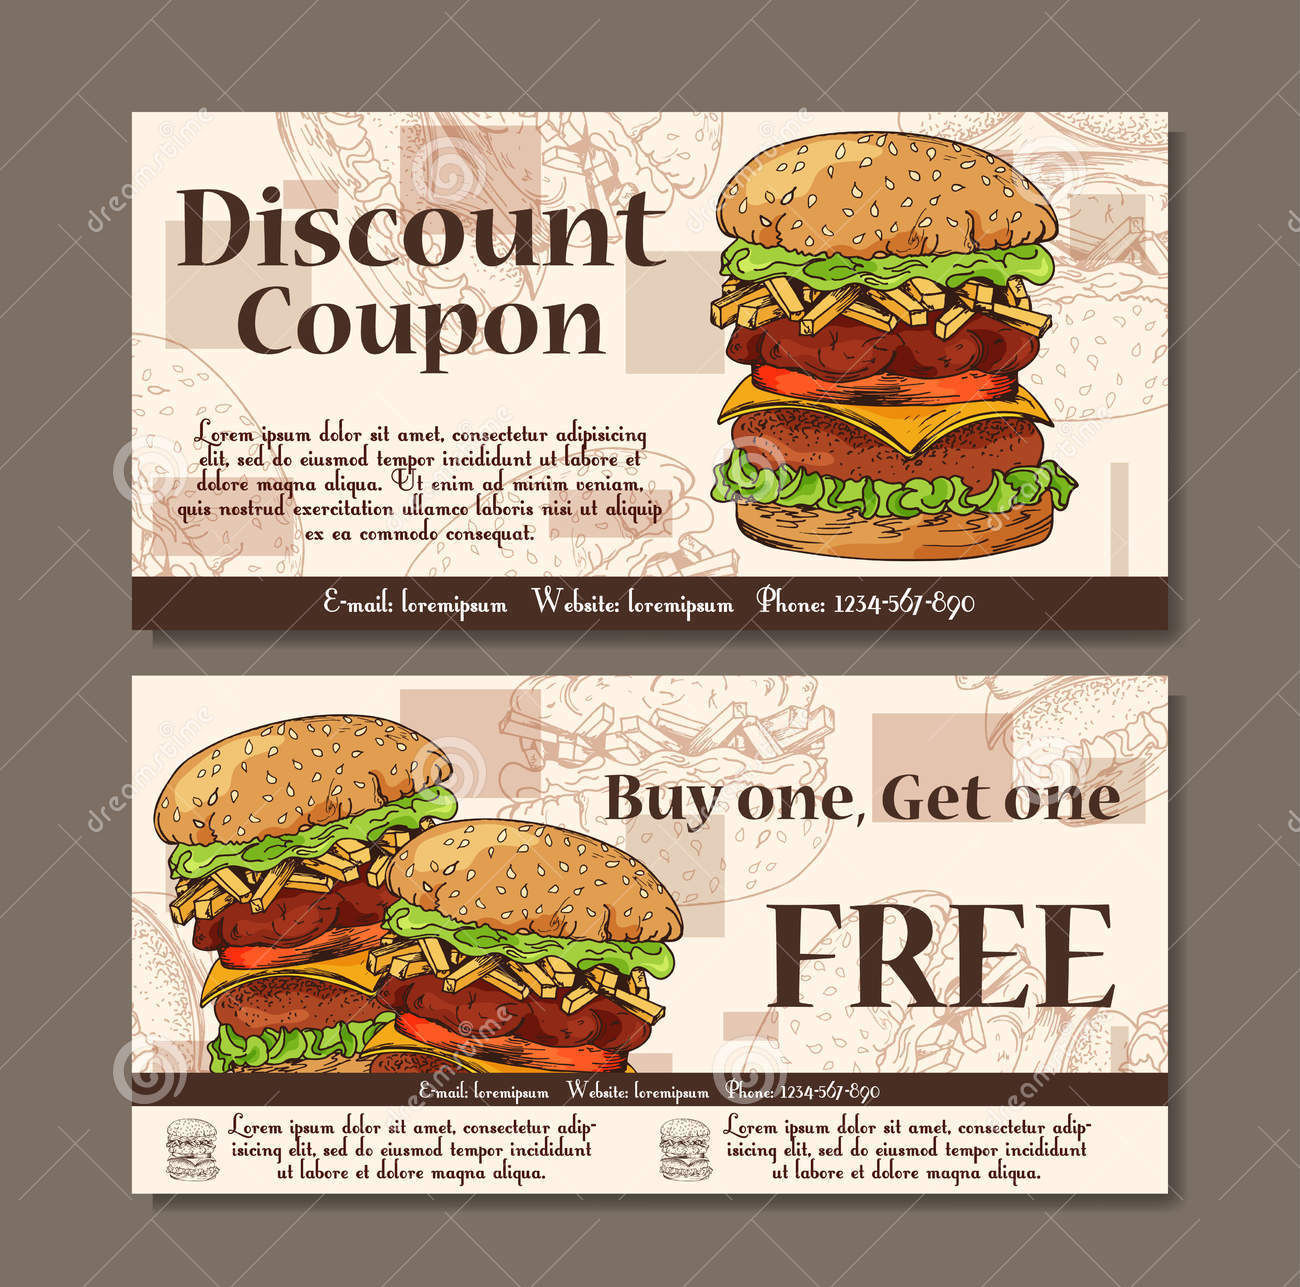 Discount coupons for restaurants in delhi